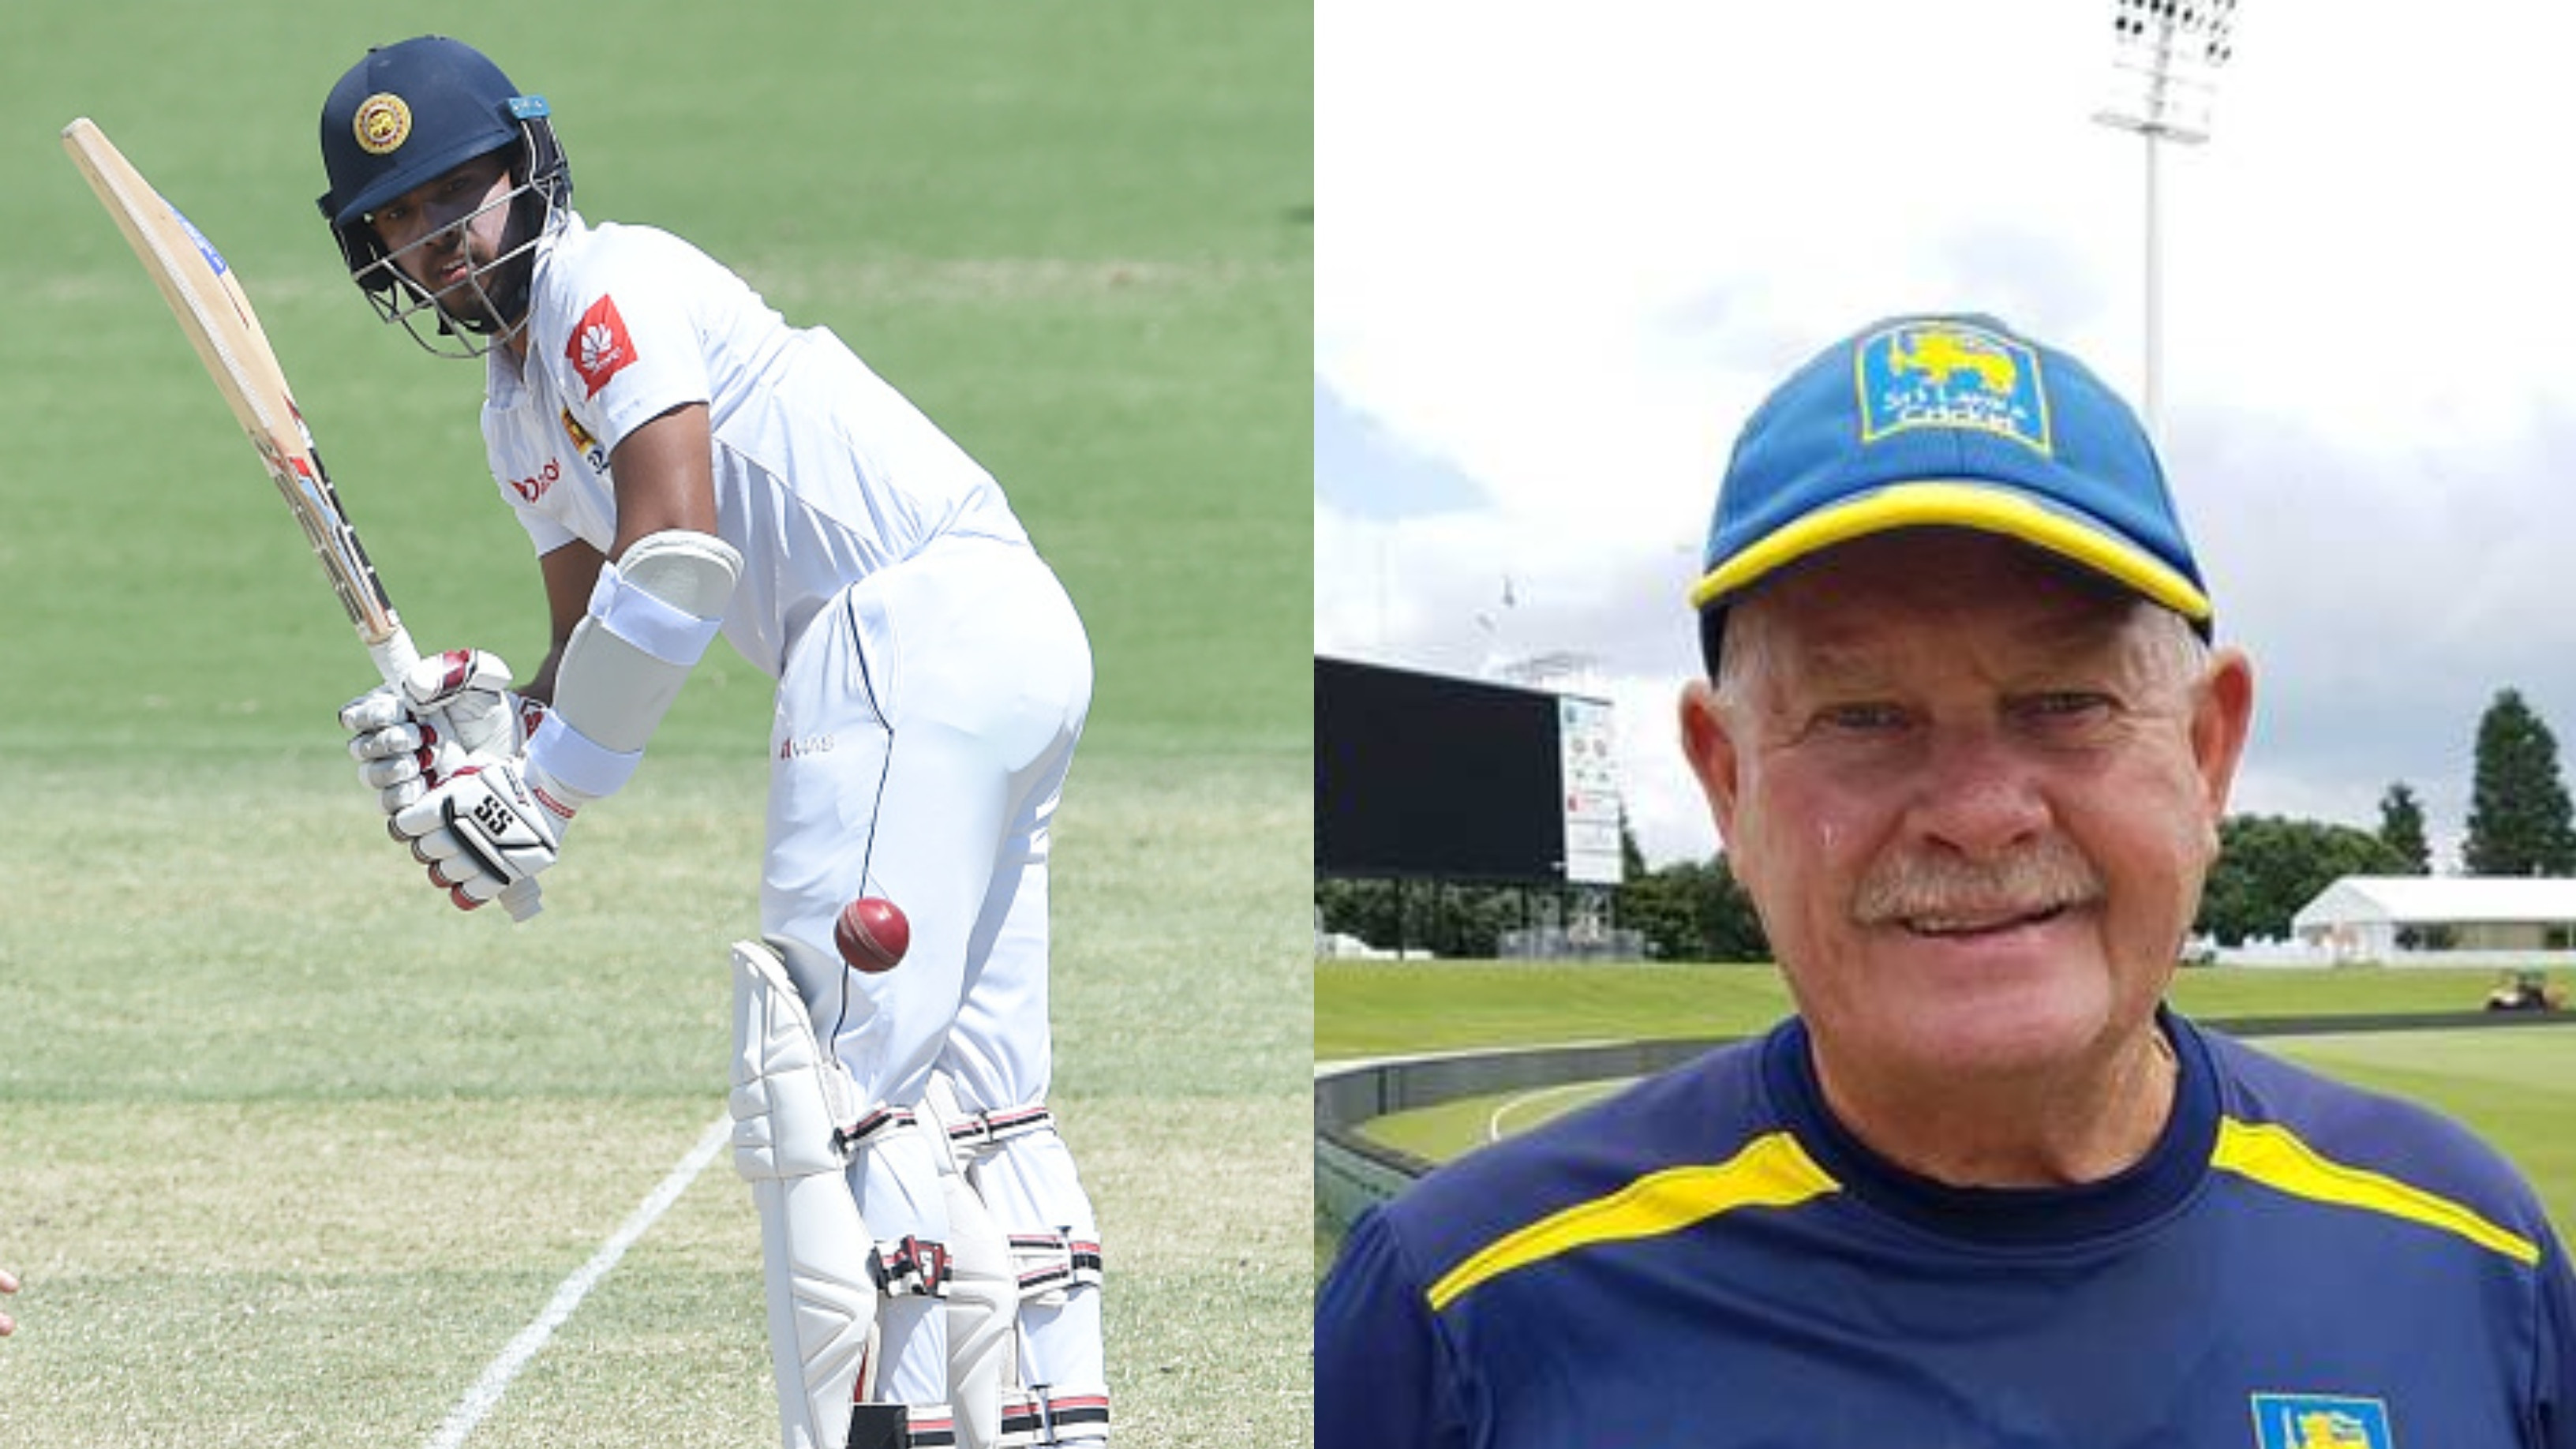 SA v SL 2019: Kusal Mendis will go onto become a classy player, feels Steve Rixon